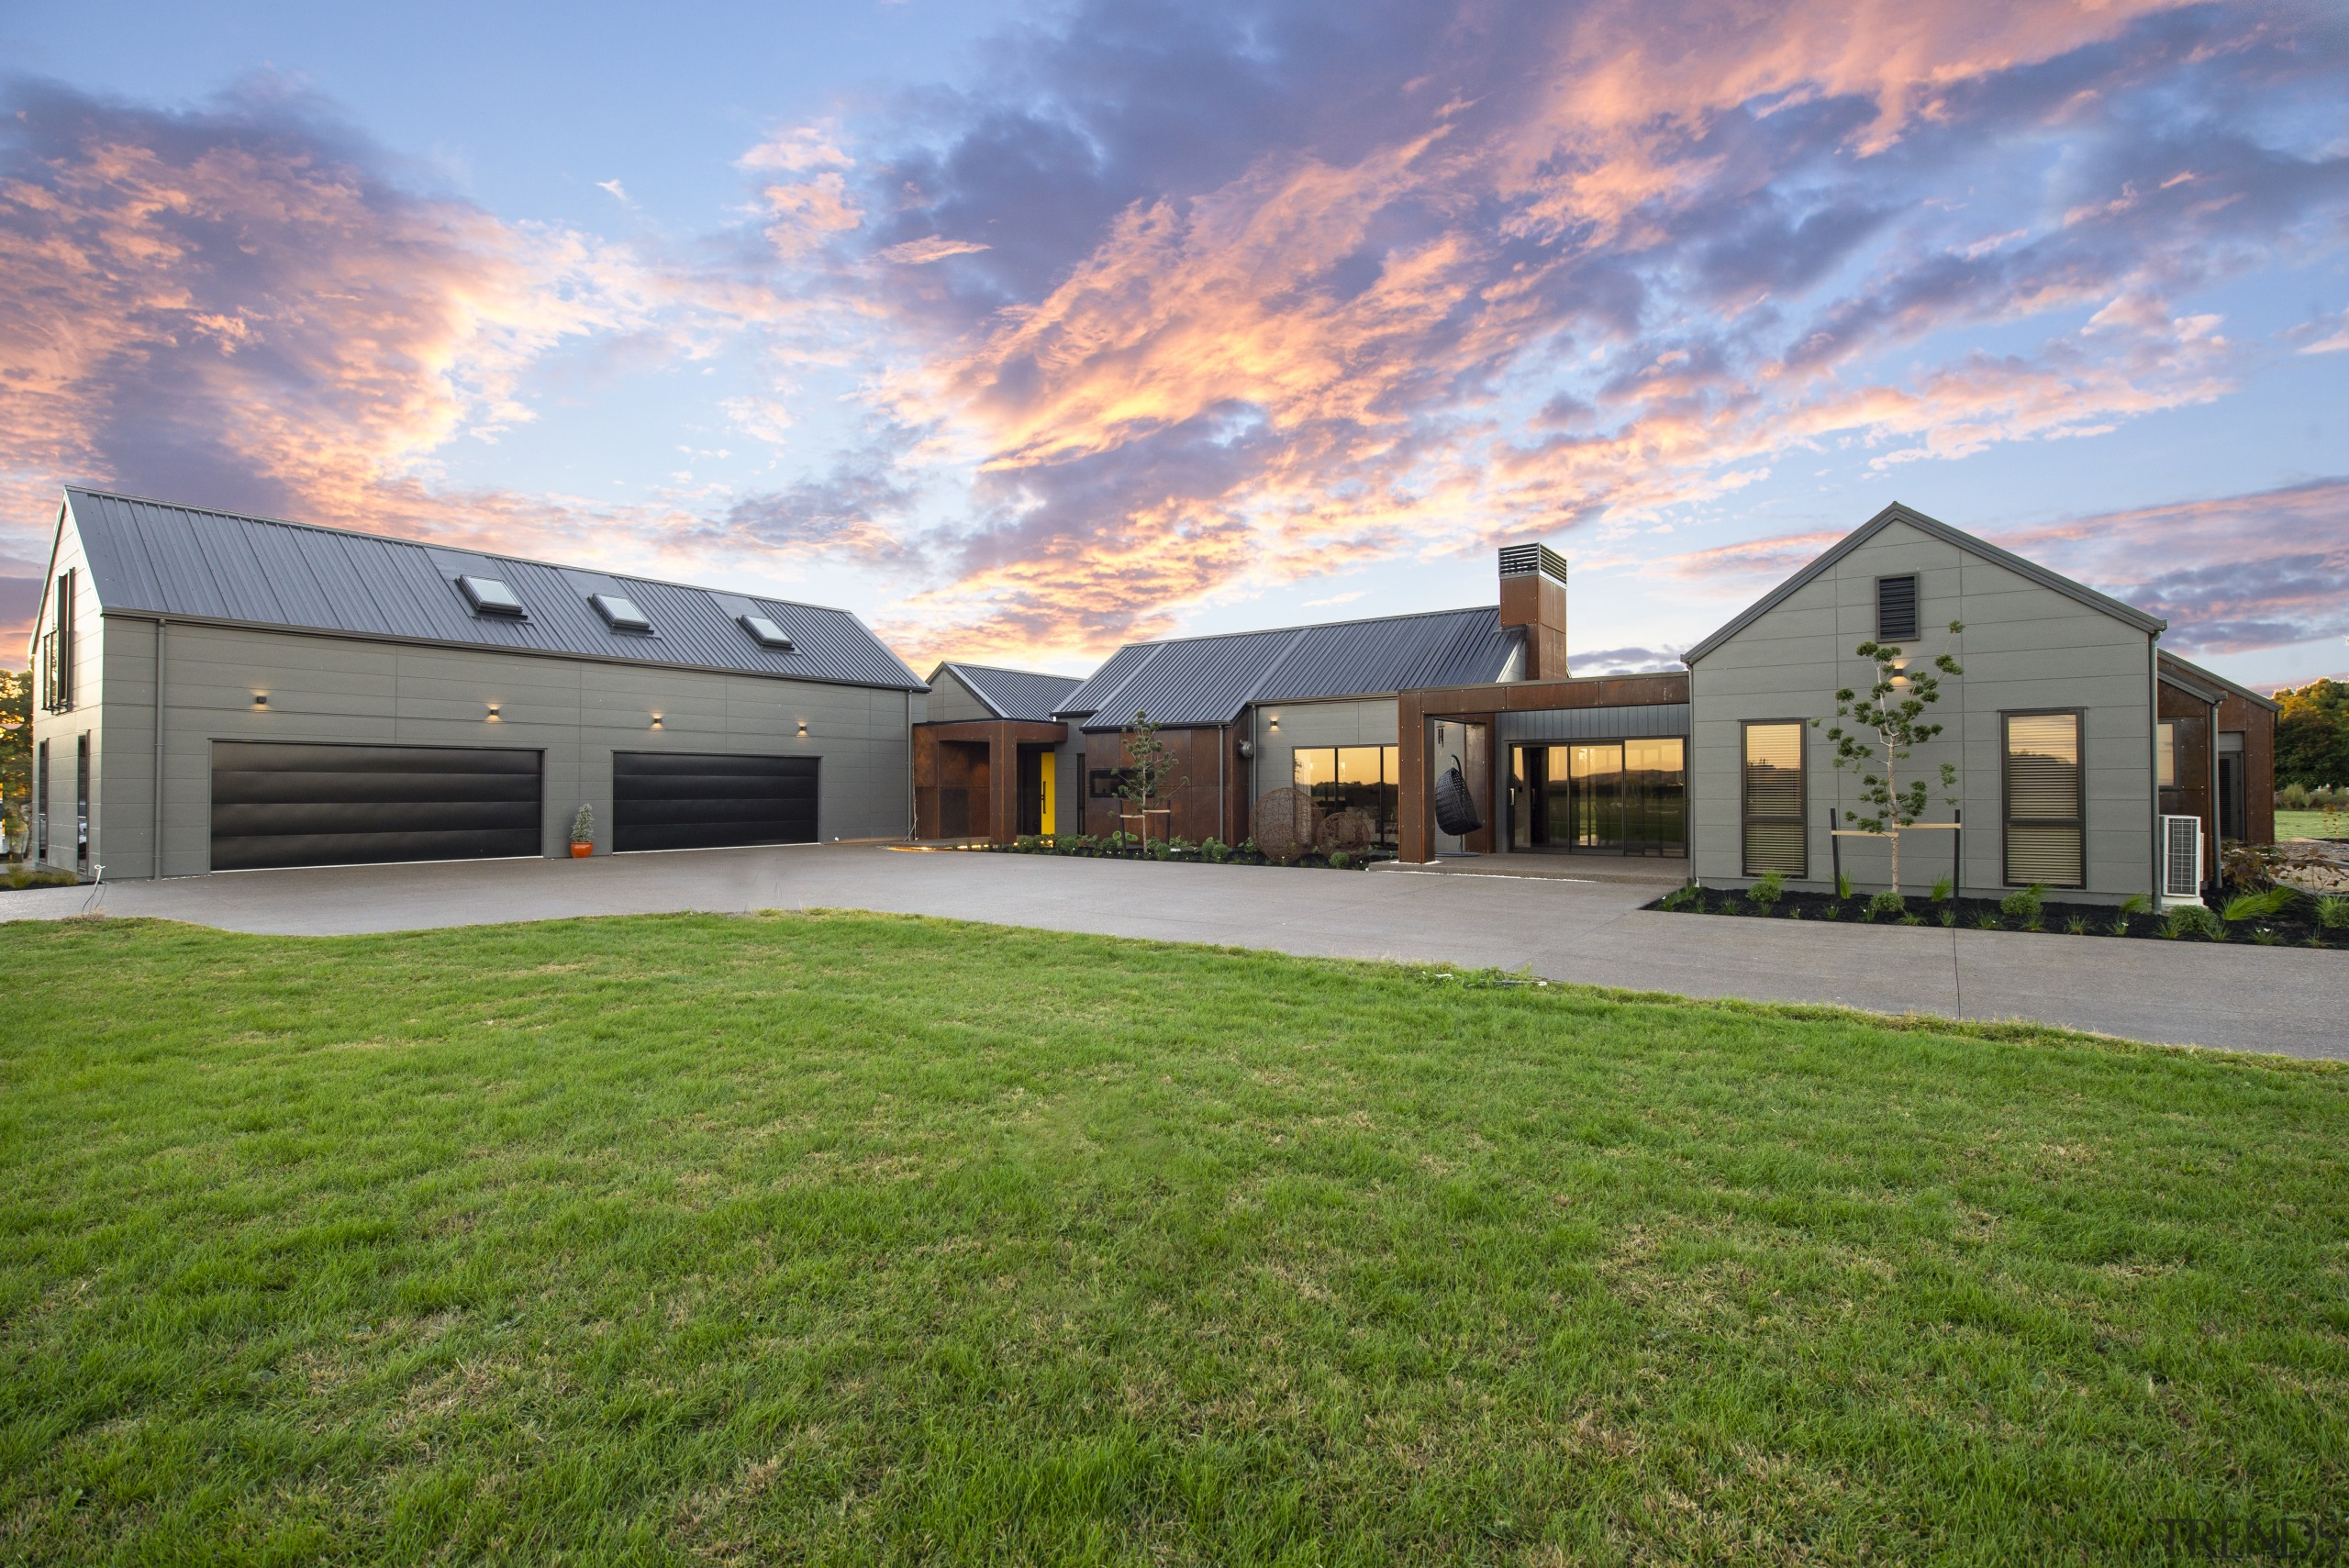 New home custom-designed to owners' unique vision